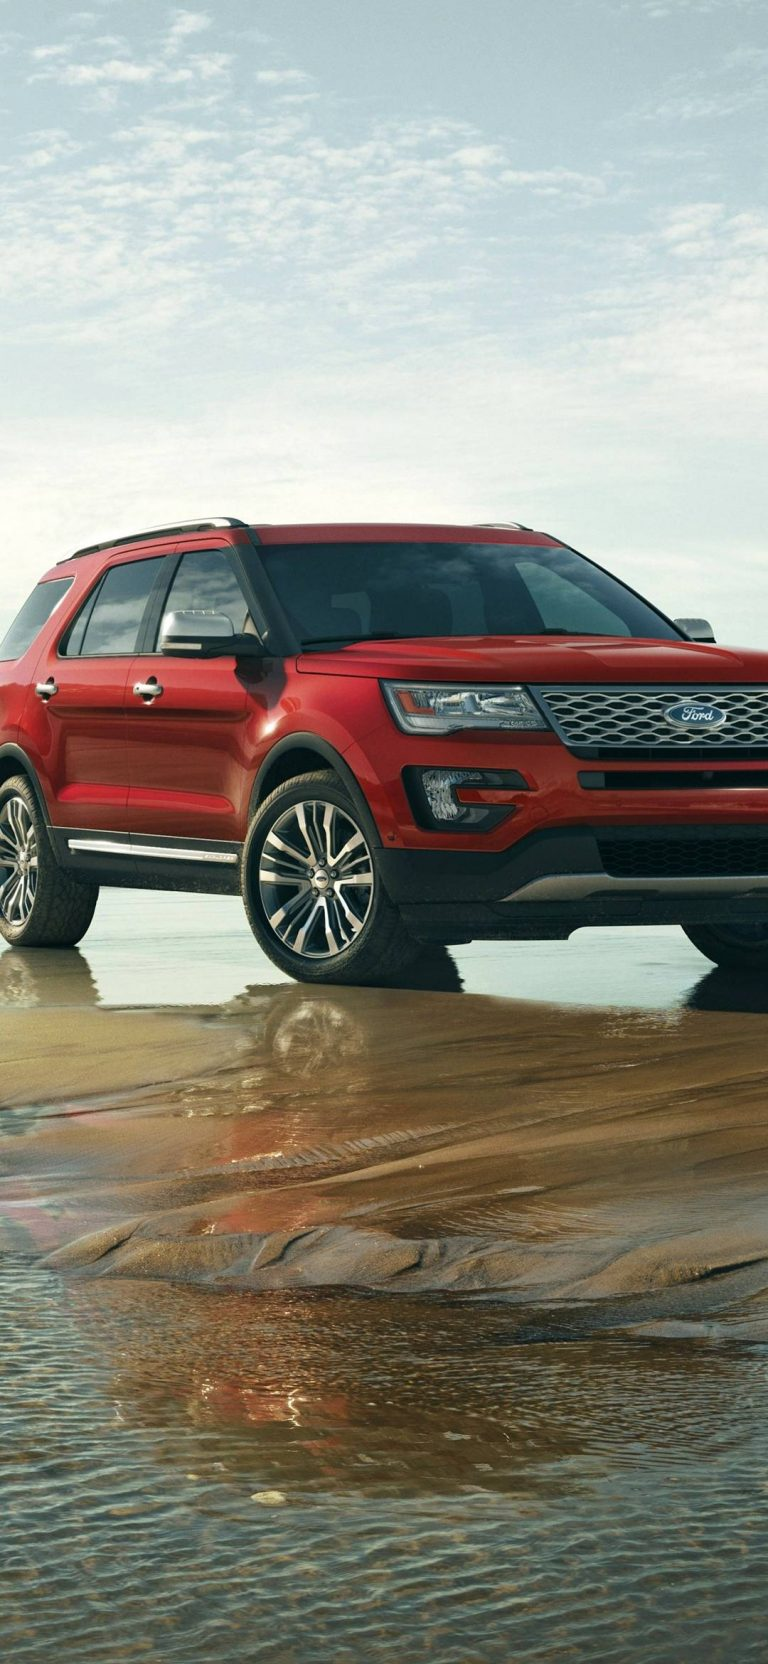 Ford Explorer 2016 Wallpaper 1080x2340 768x1664